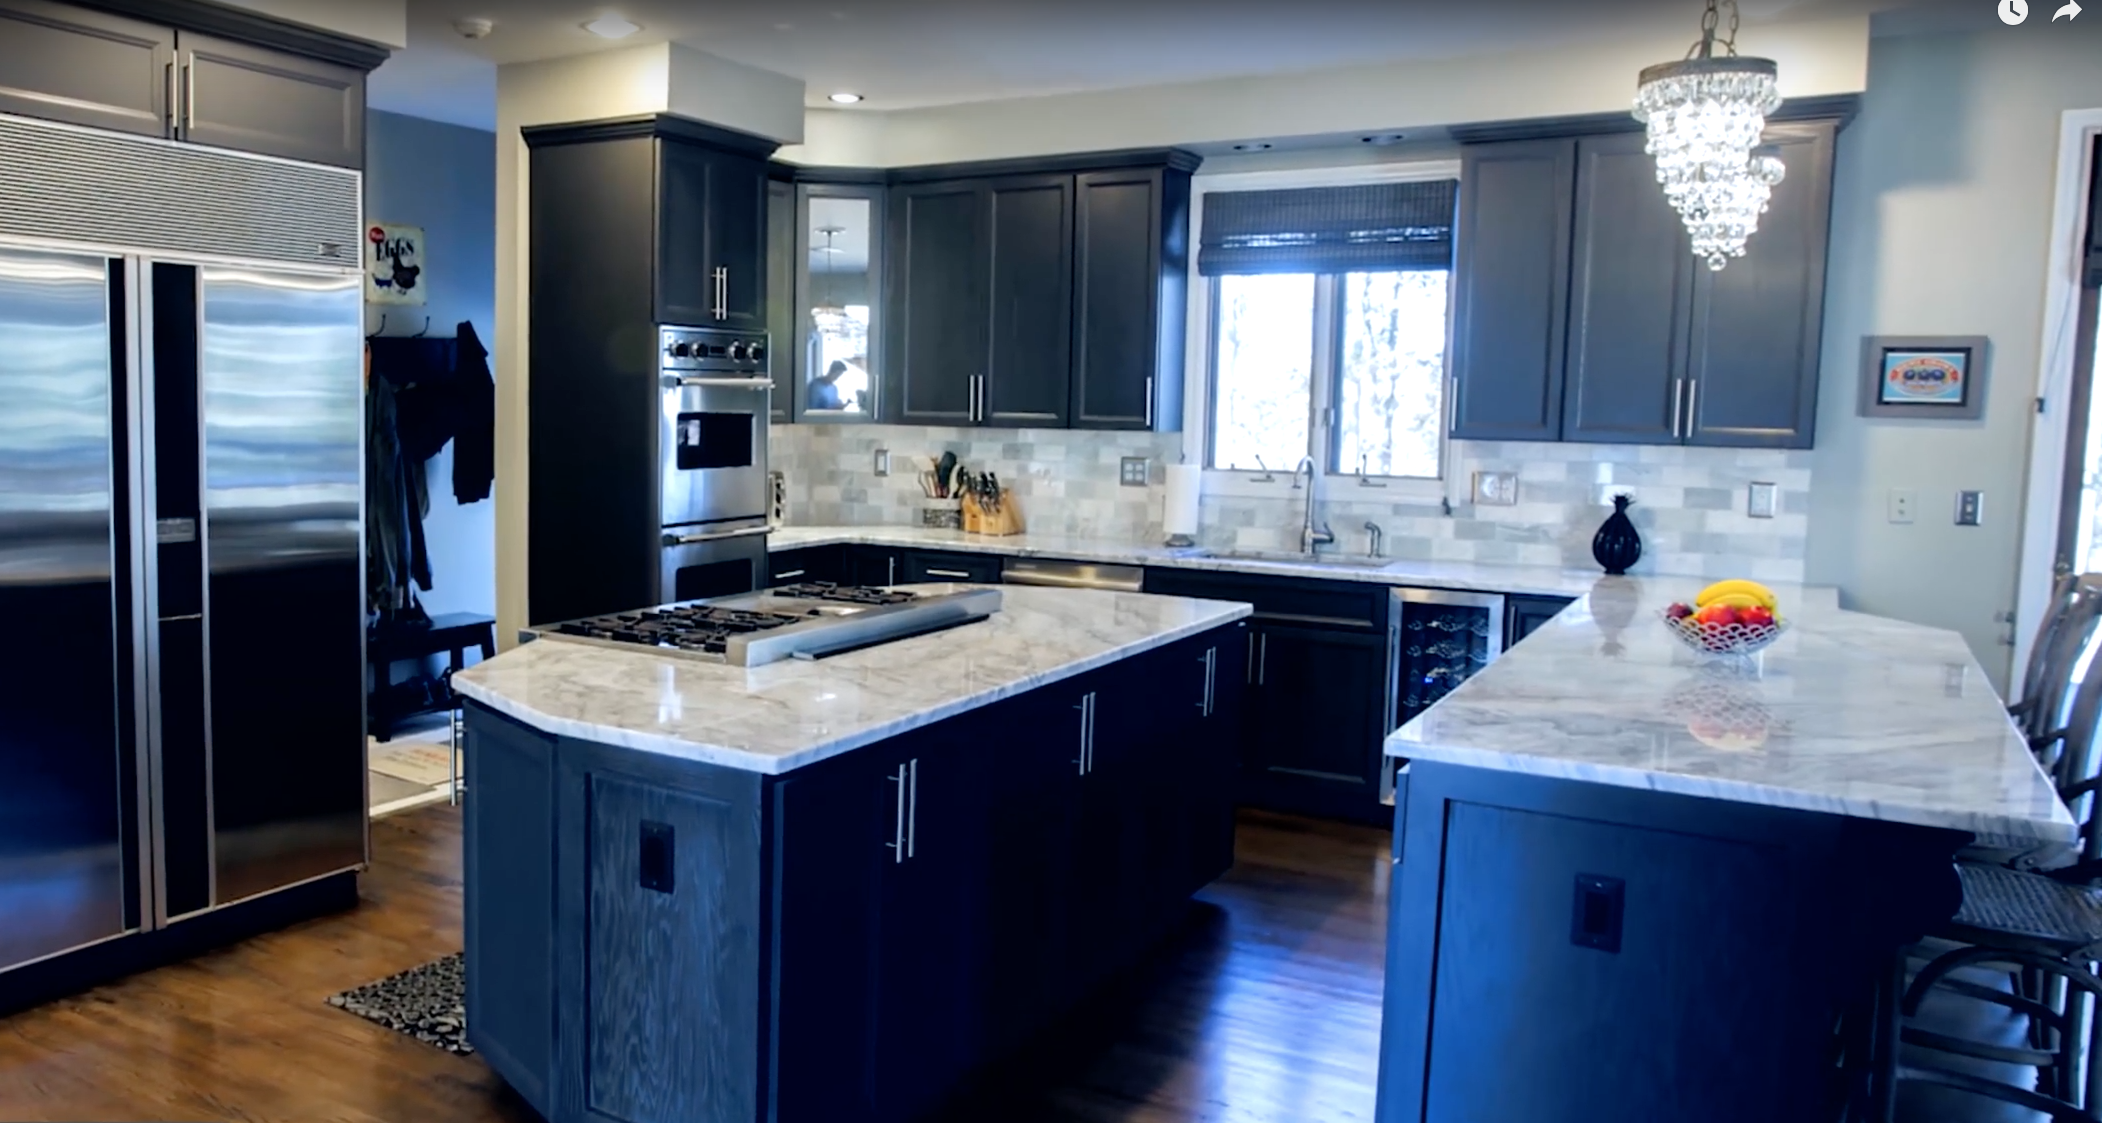 Top 5 Kitchen Countertop Choices for Dark Cabinets